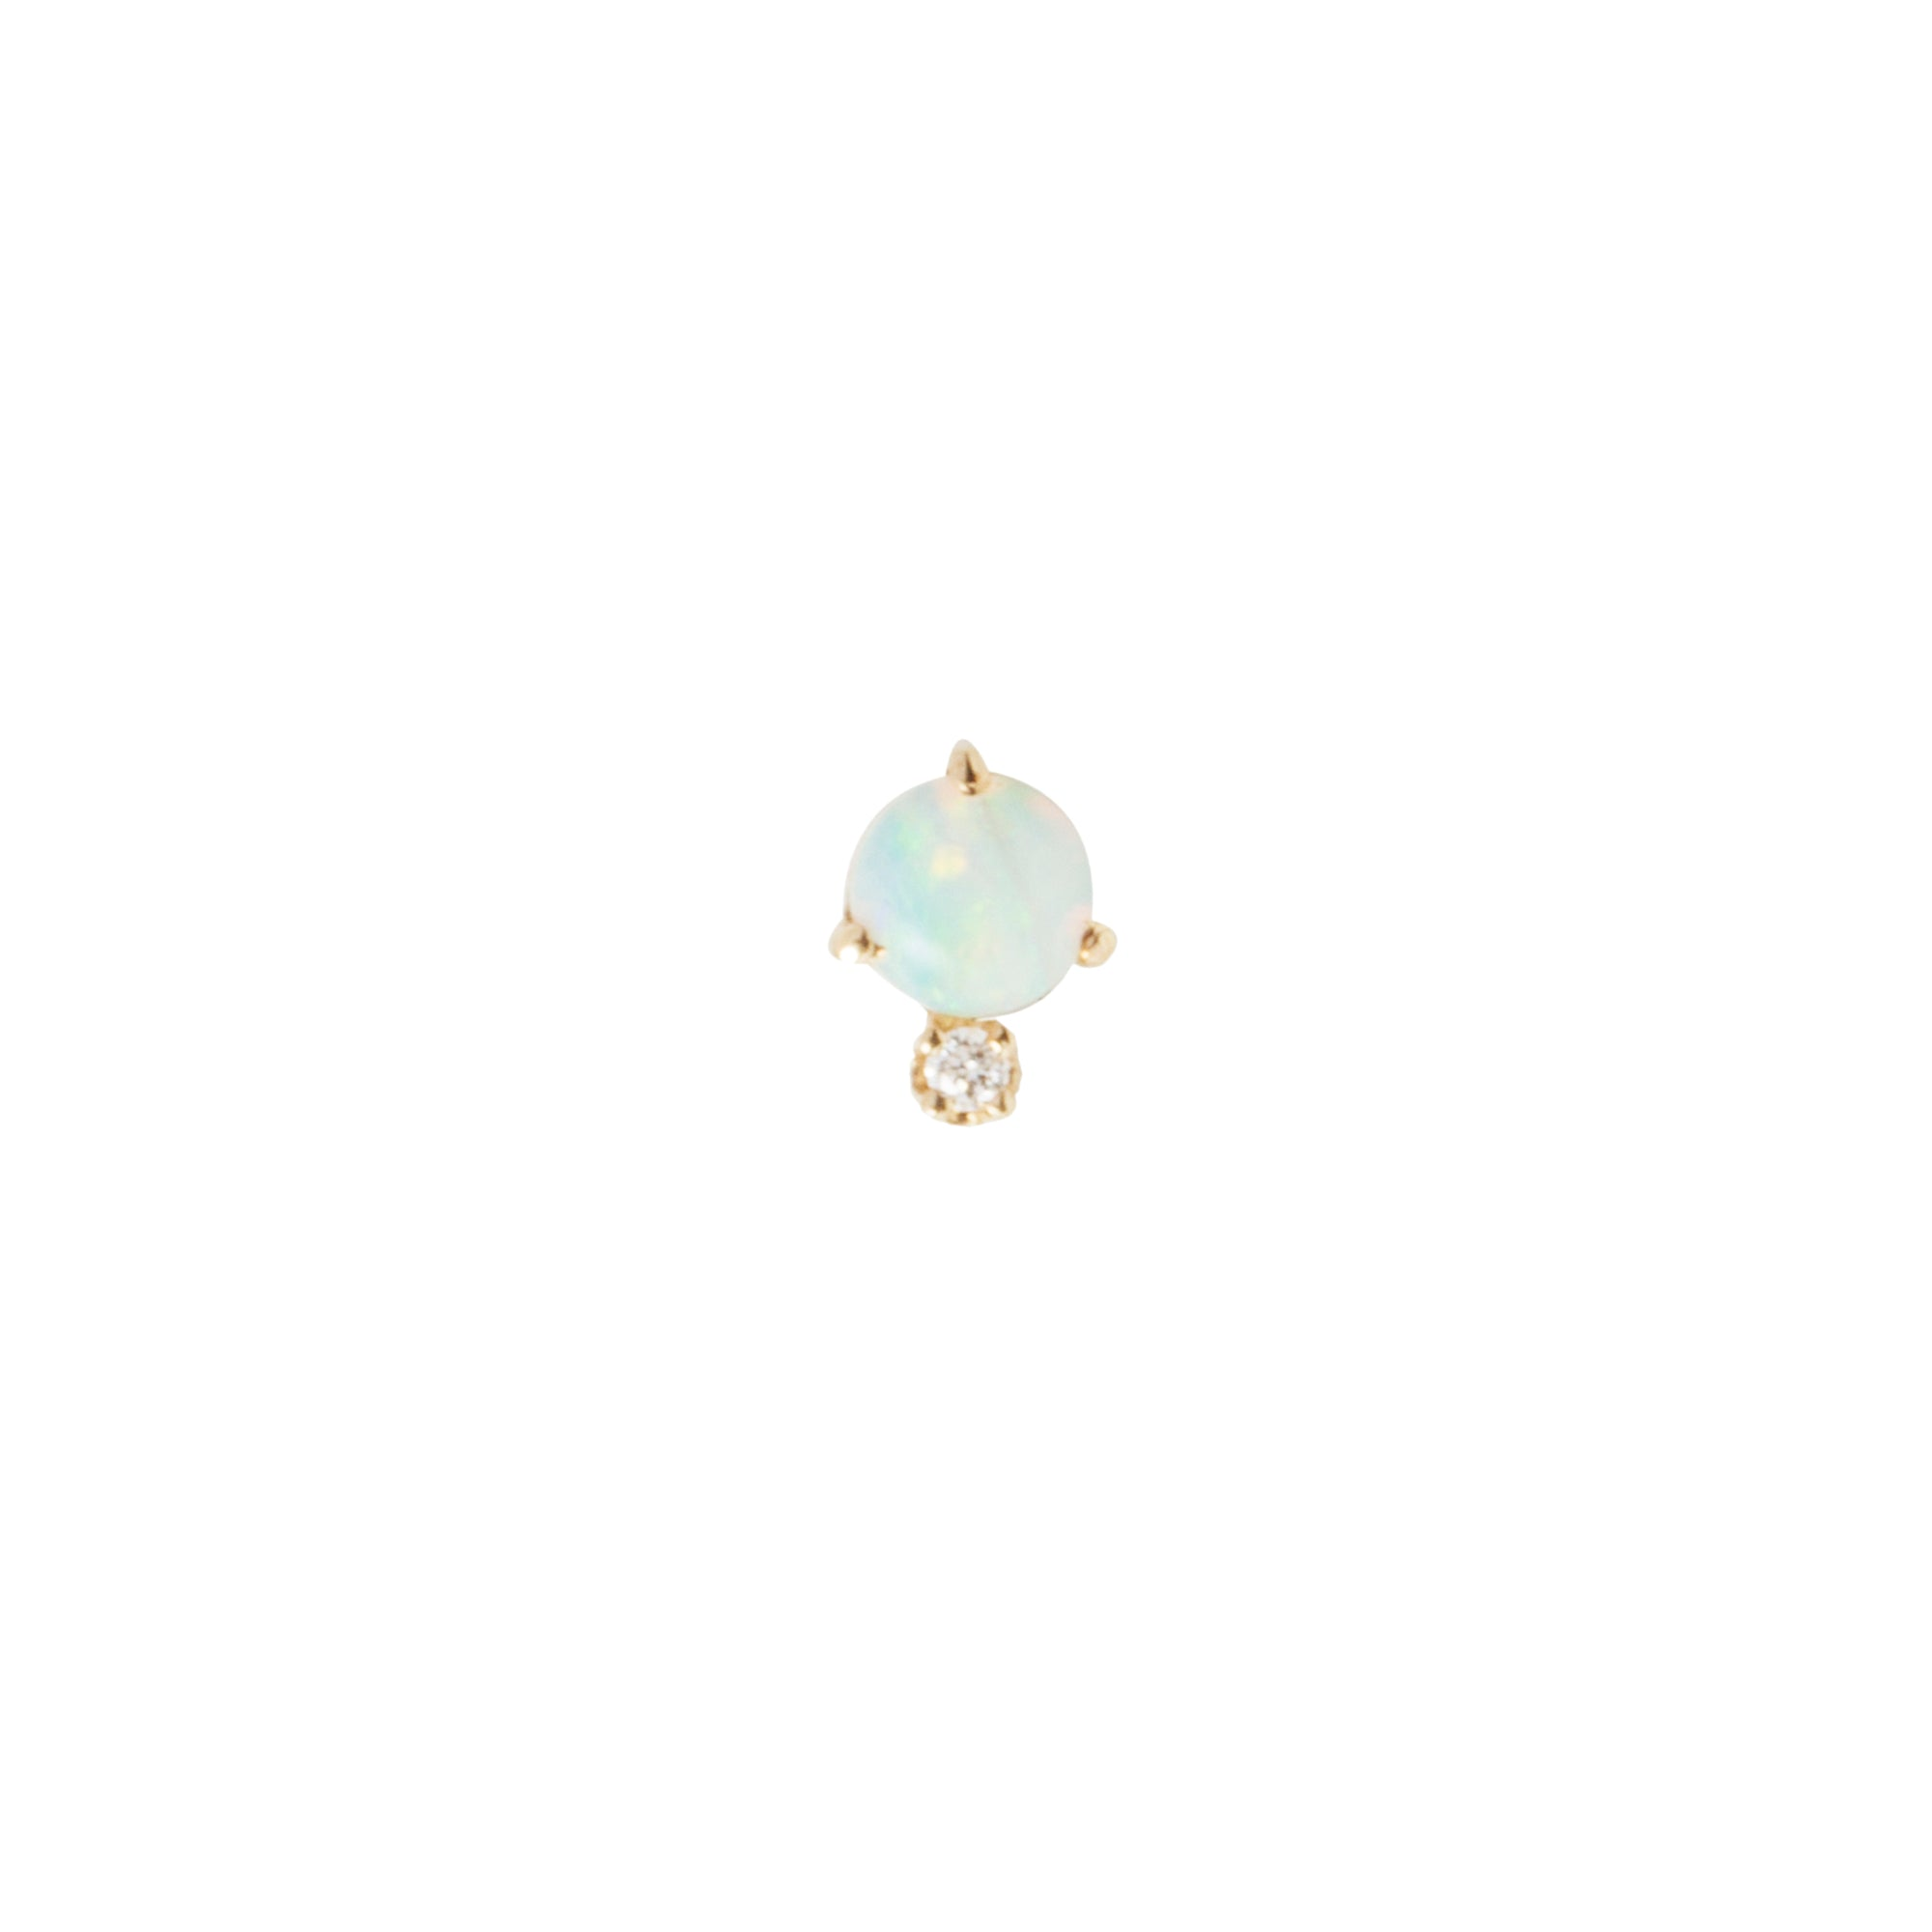 gold Classic Opal and Diamond Earring by Wwake for Broken English Jewelry